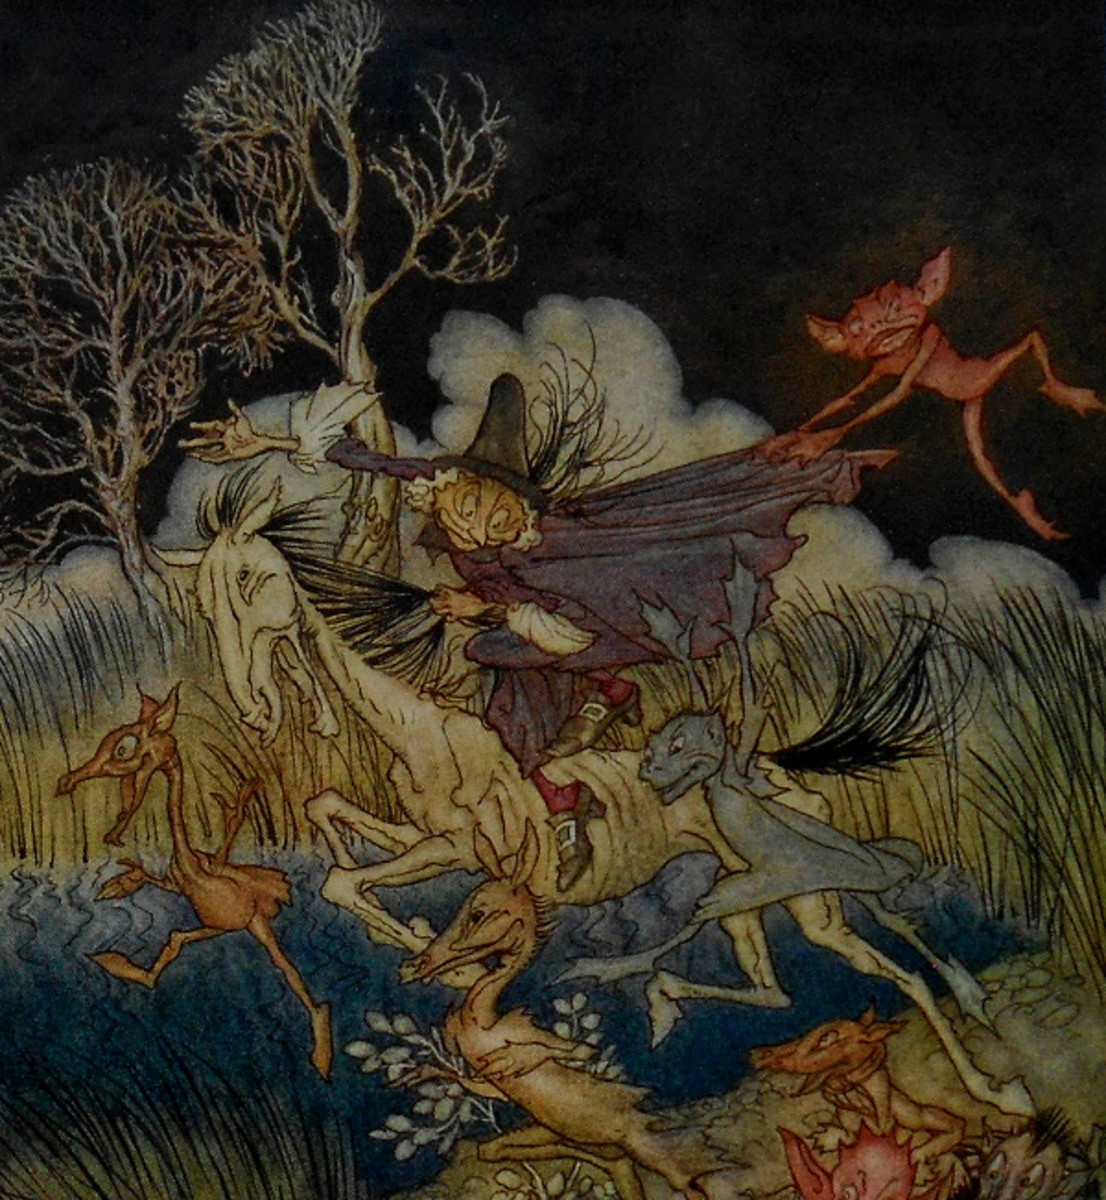 "Here we show a portion of 'The nightmare, with her whole ninefold' - a design by Arthur Rackham from his suite of illustrations published in ""The Legend of Sleepy Hollow"" (1928)."